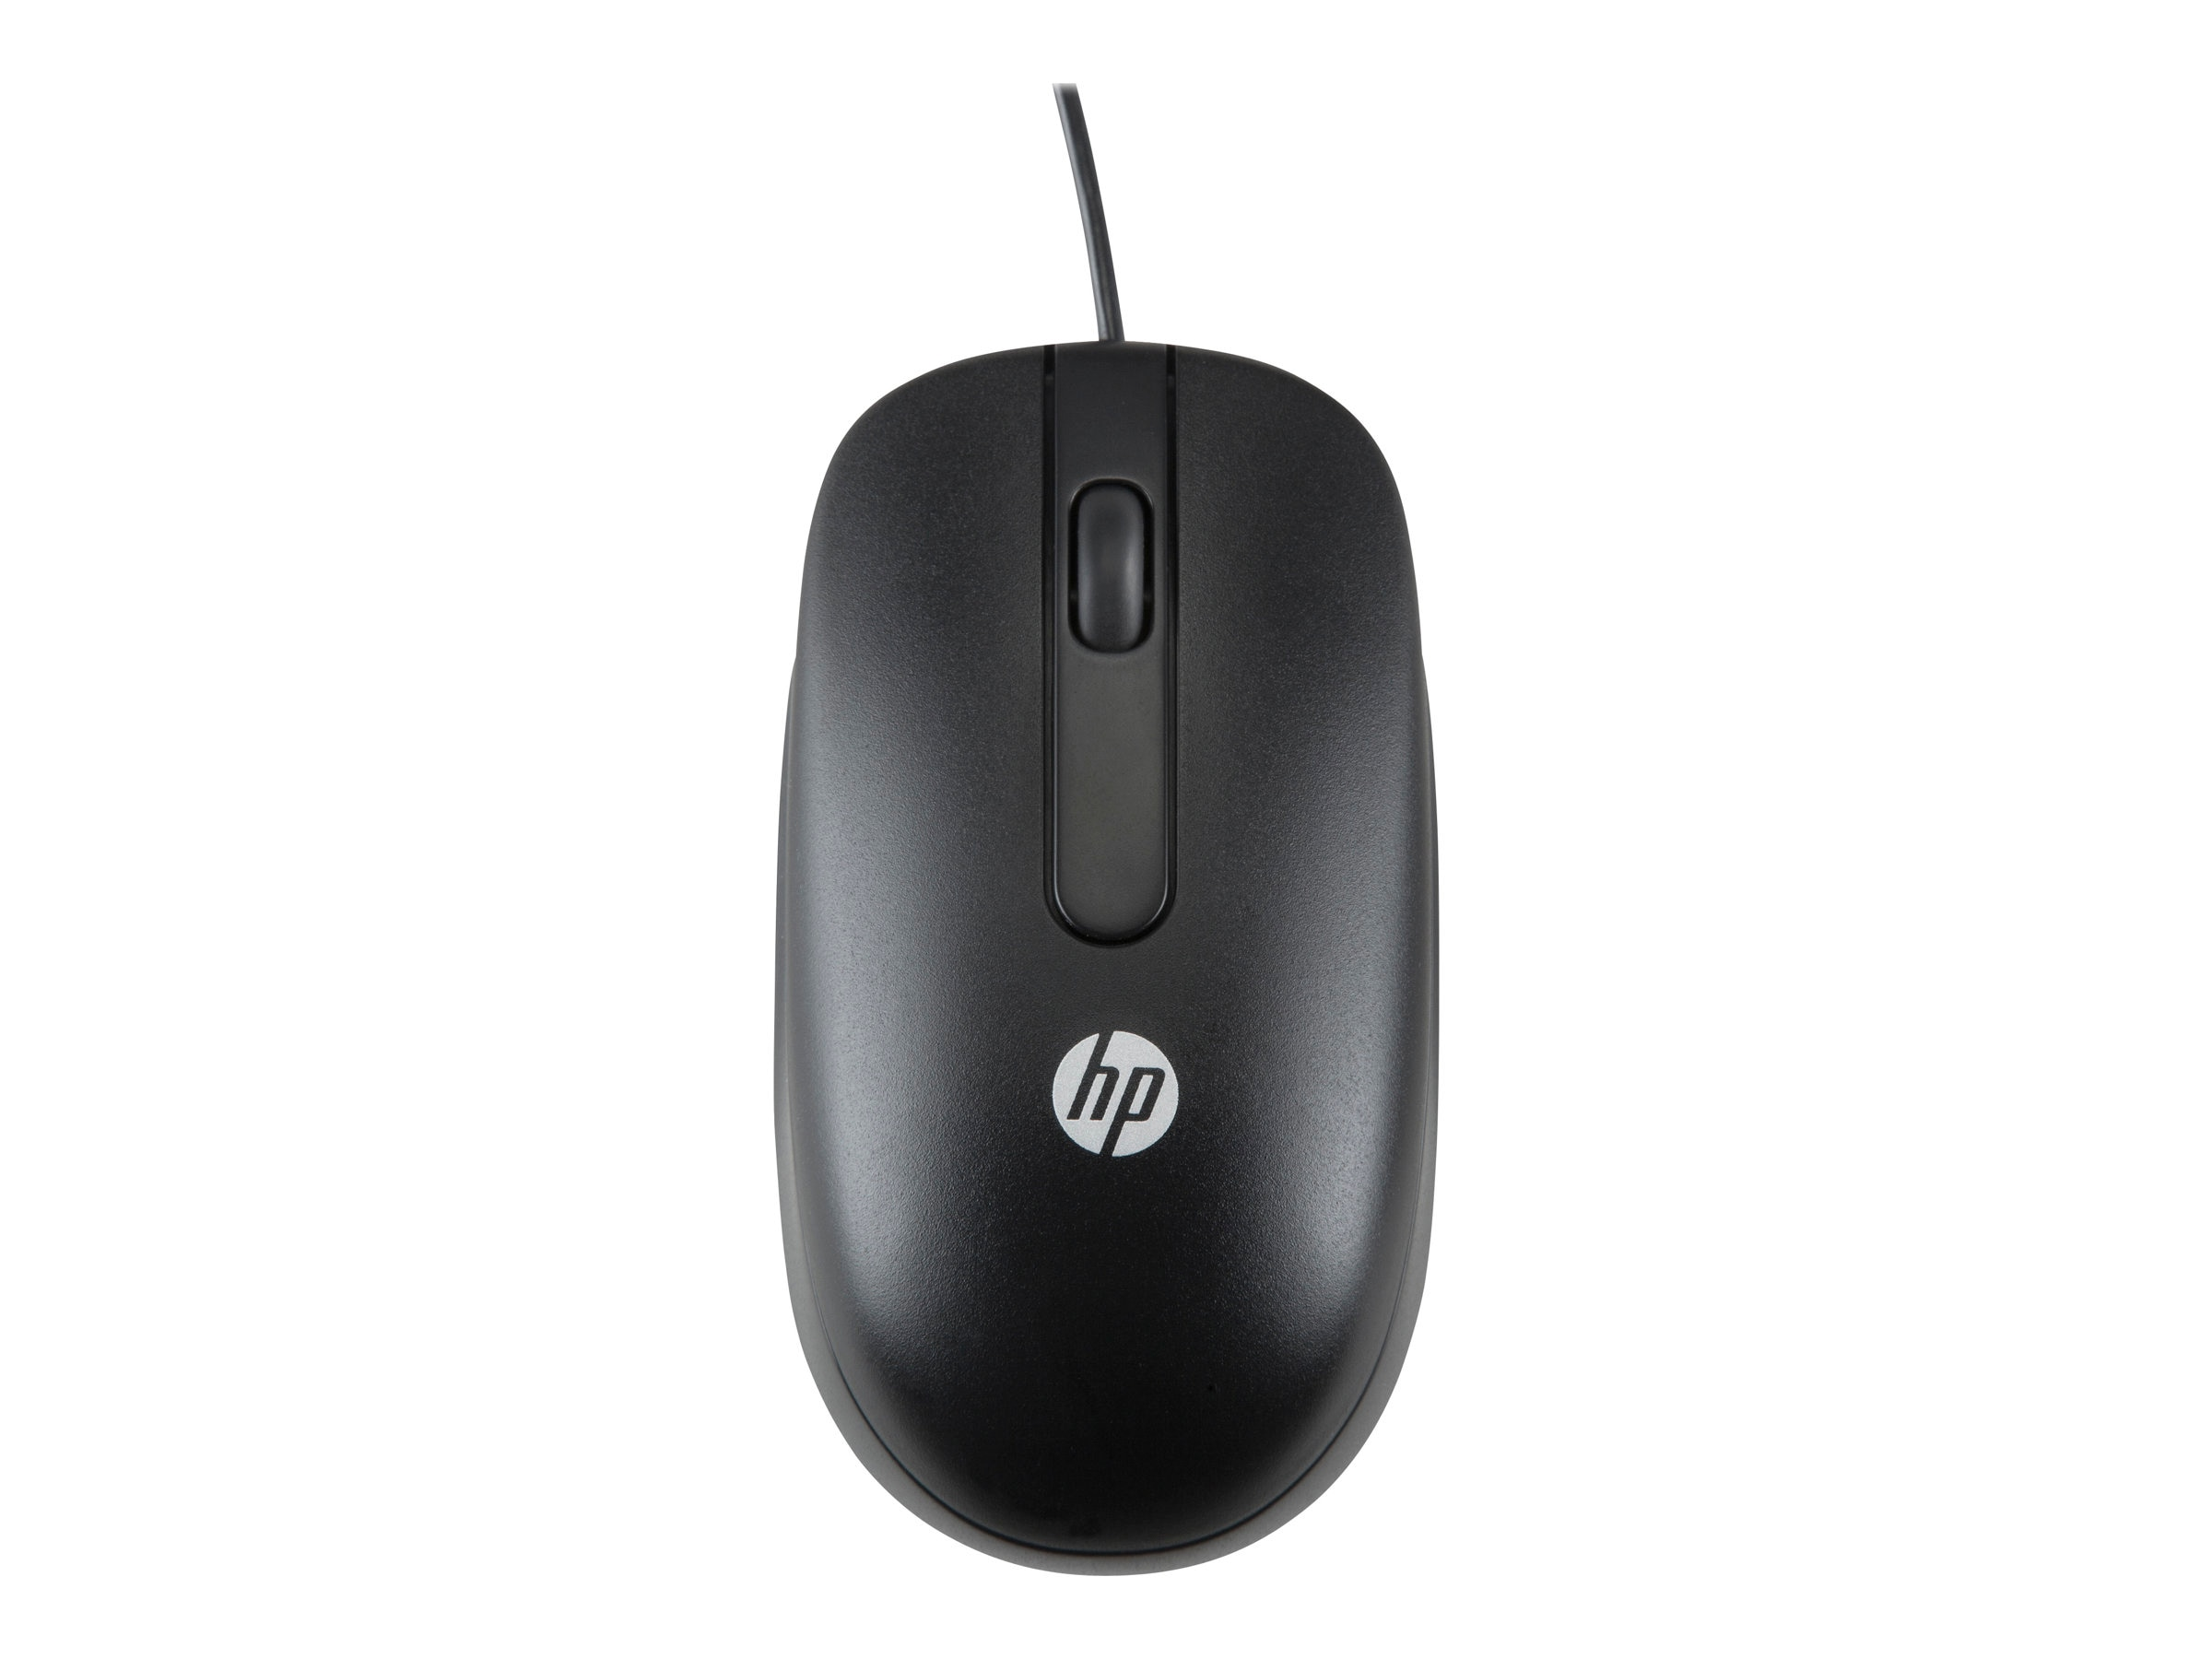 HP USB Optical Scroll Mouse, QY777AT